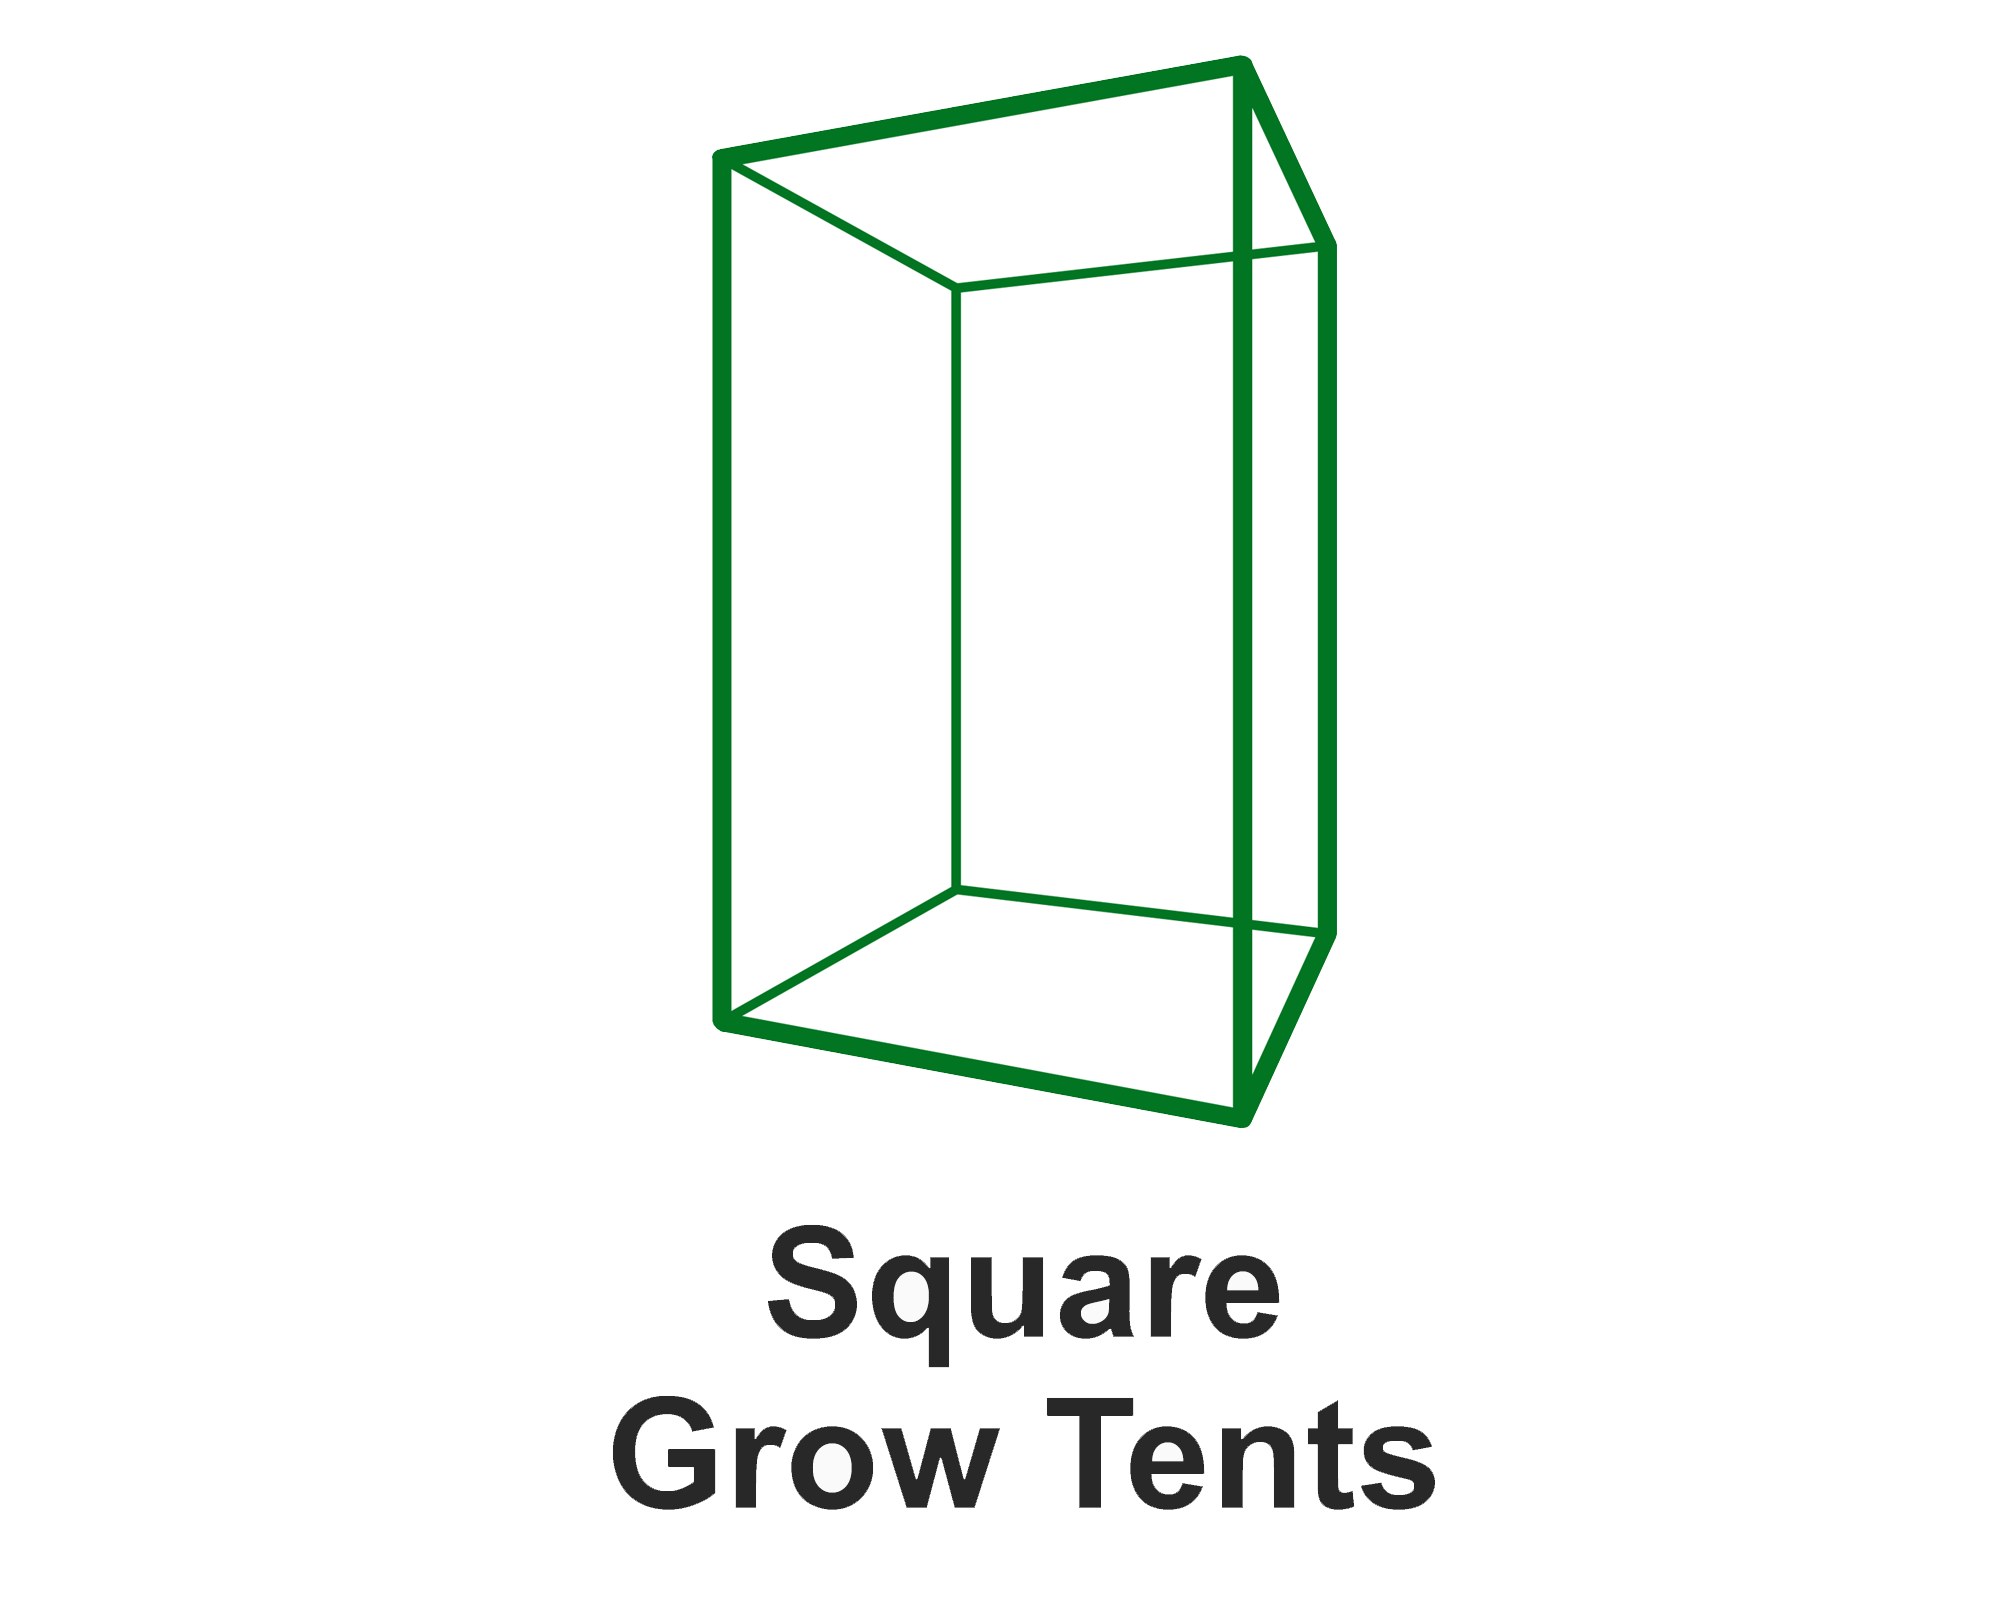 Square Grow Tents